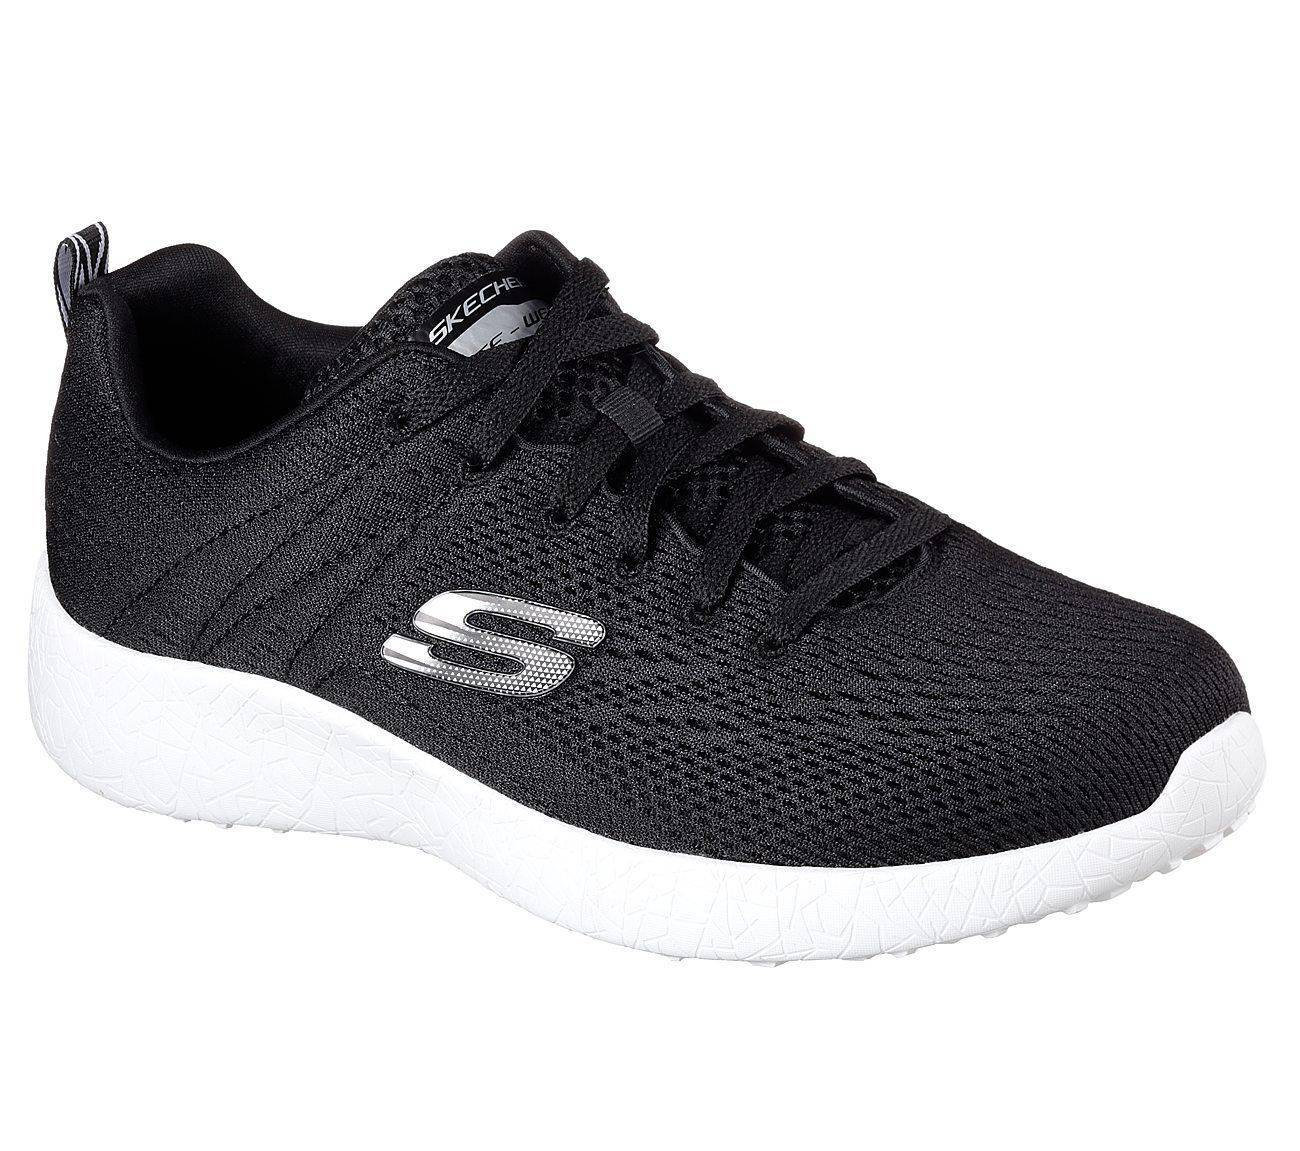 Skechers Mens Black and White Energy Burst Training Shoes -9